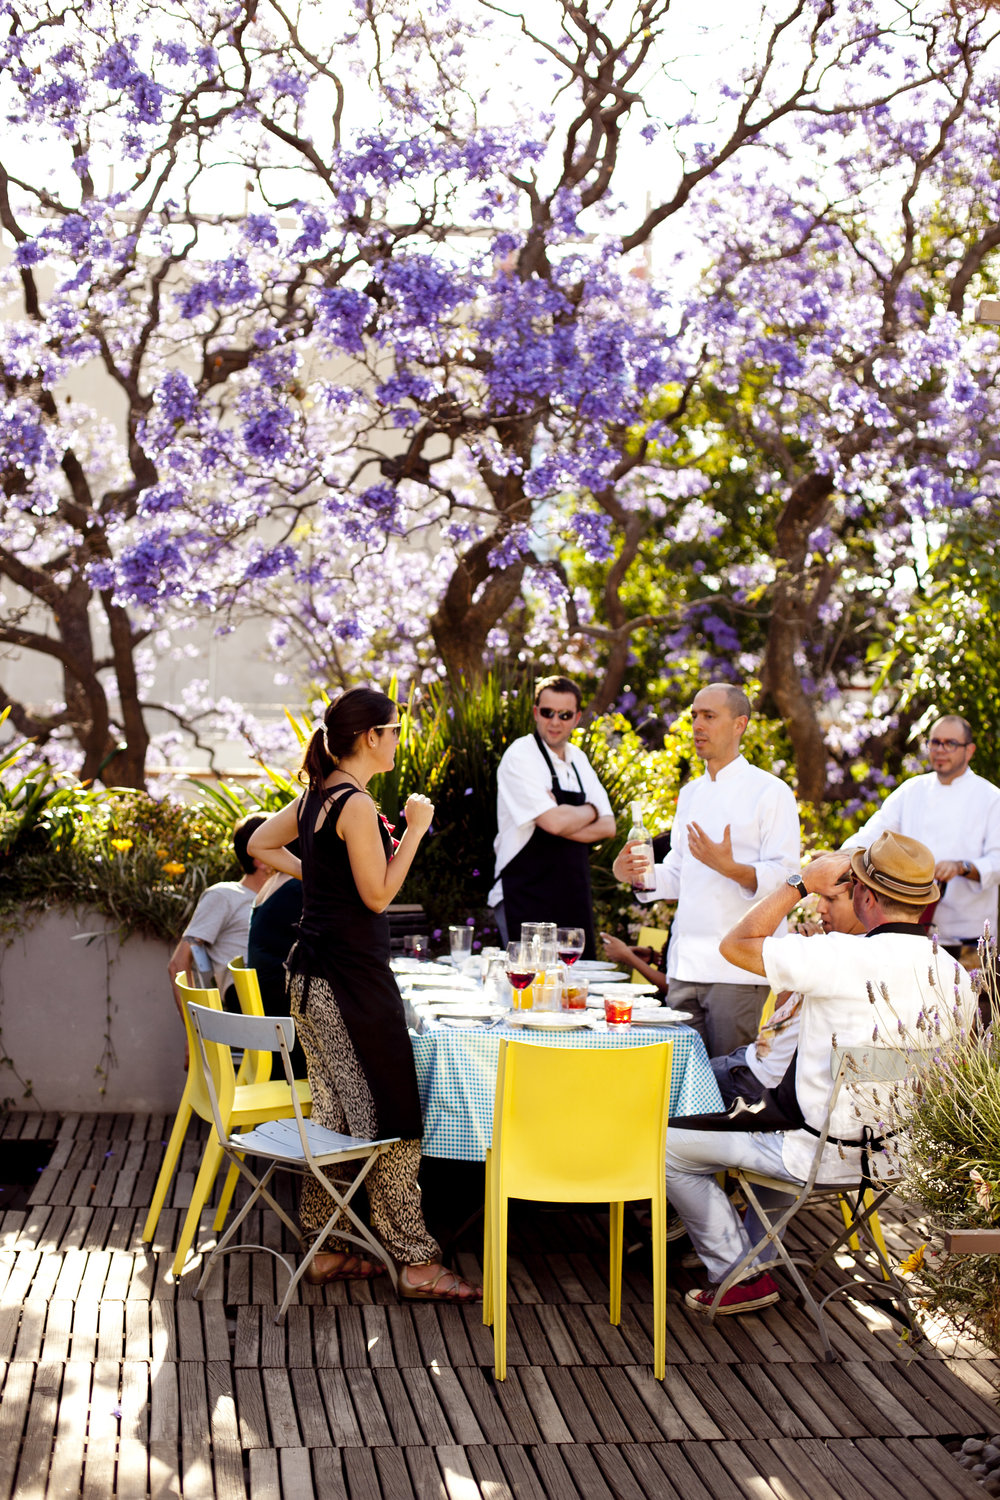 group of people eating lunch under a jacaranda tree